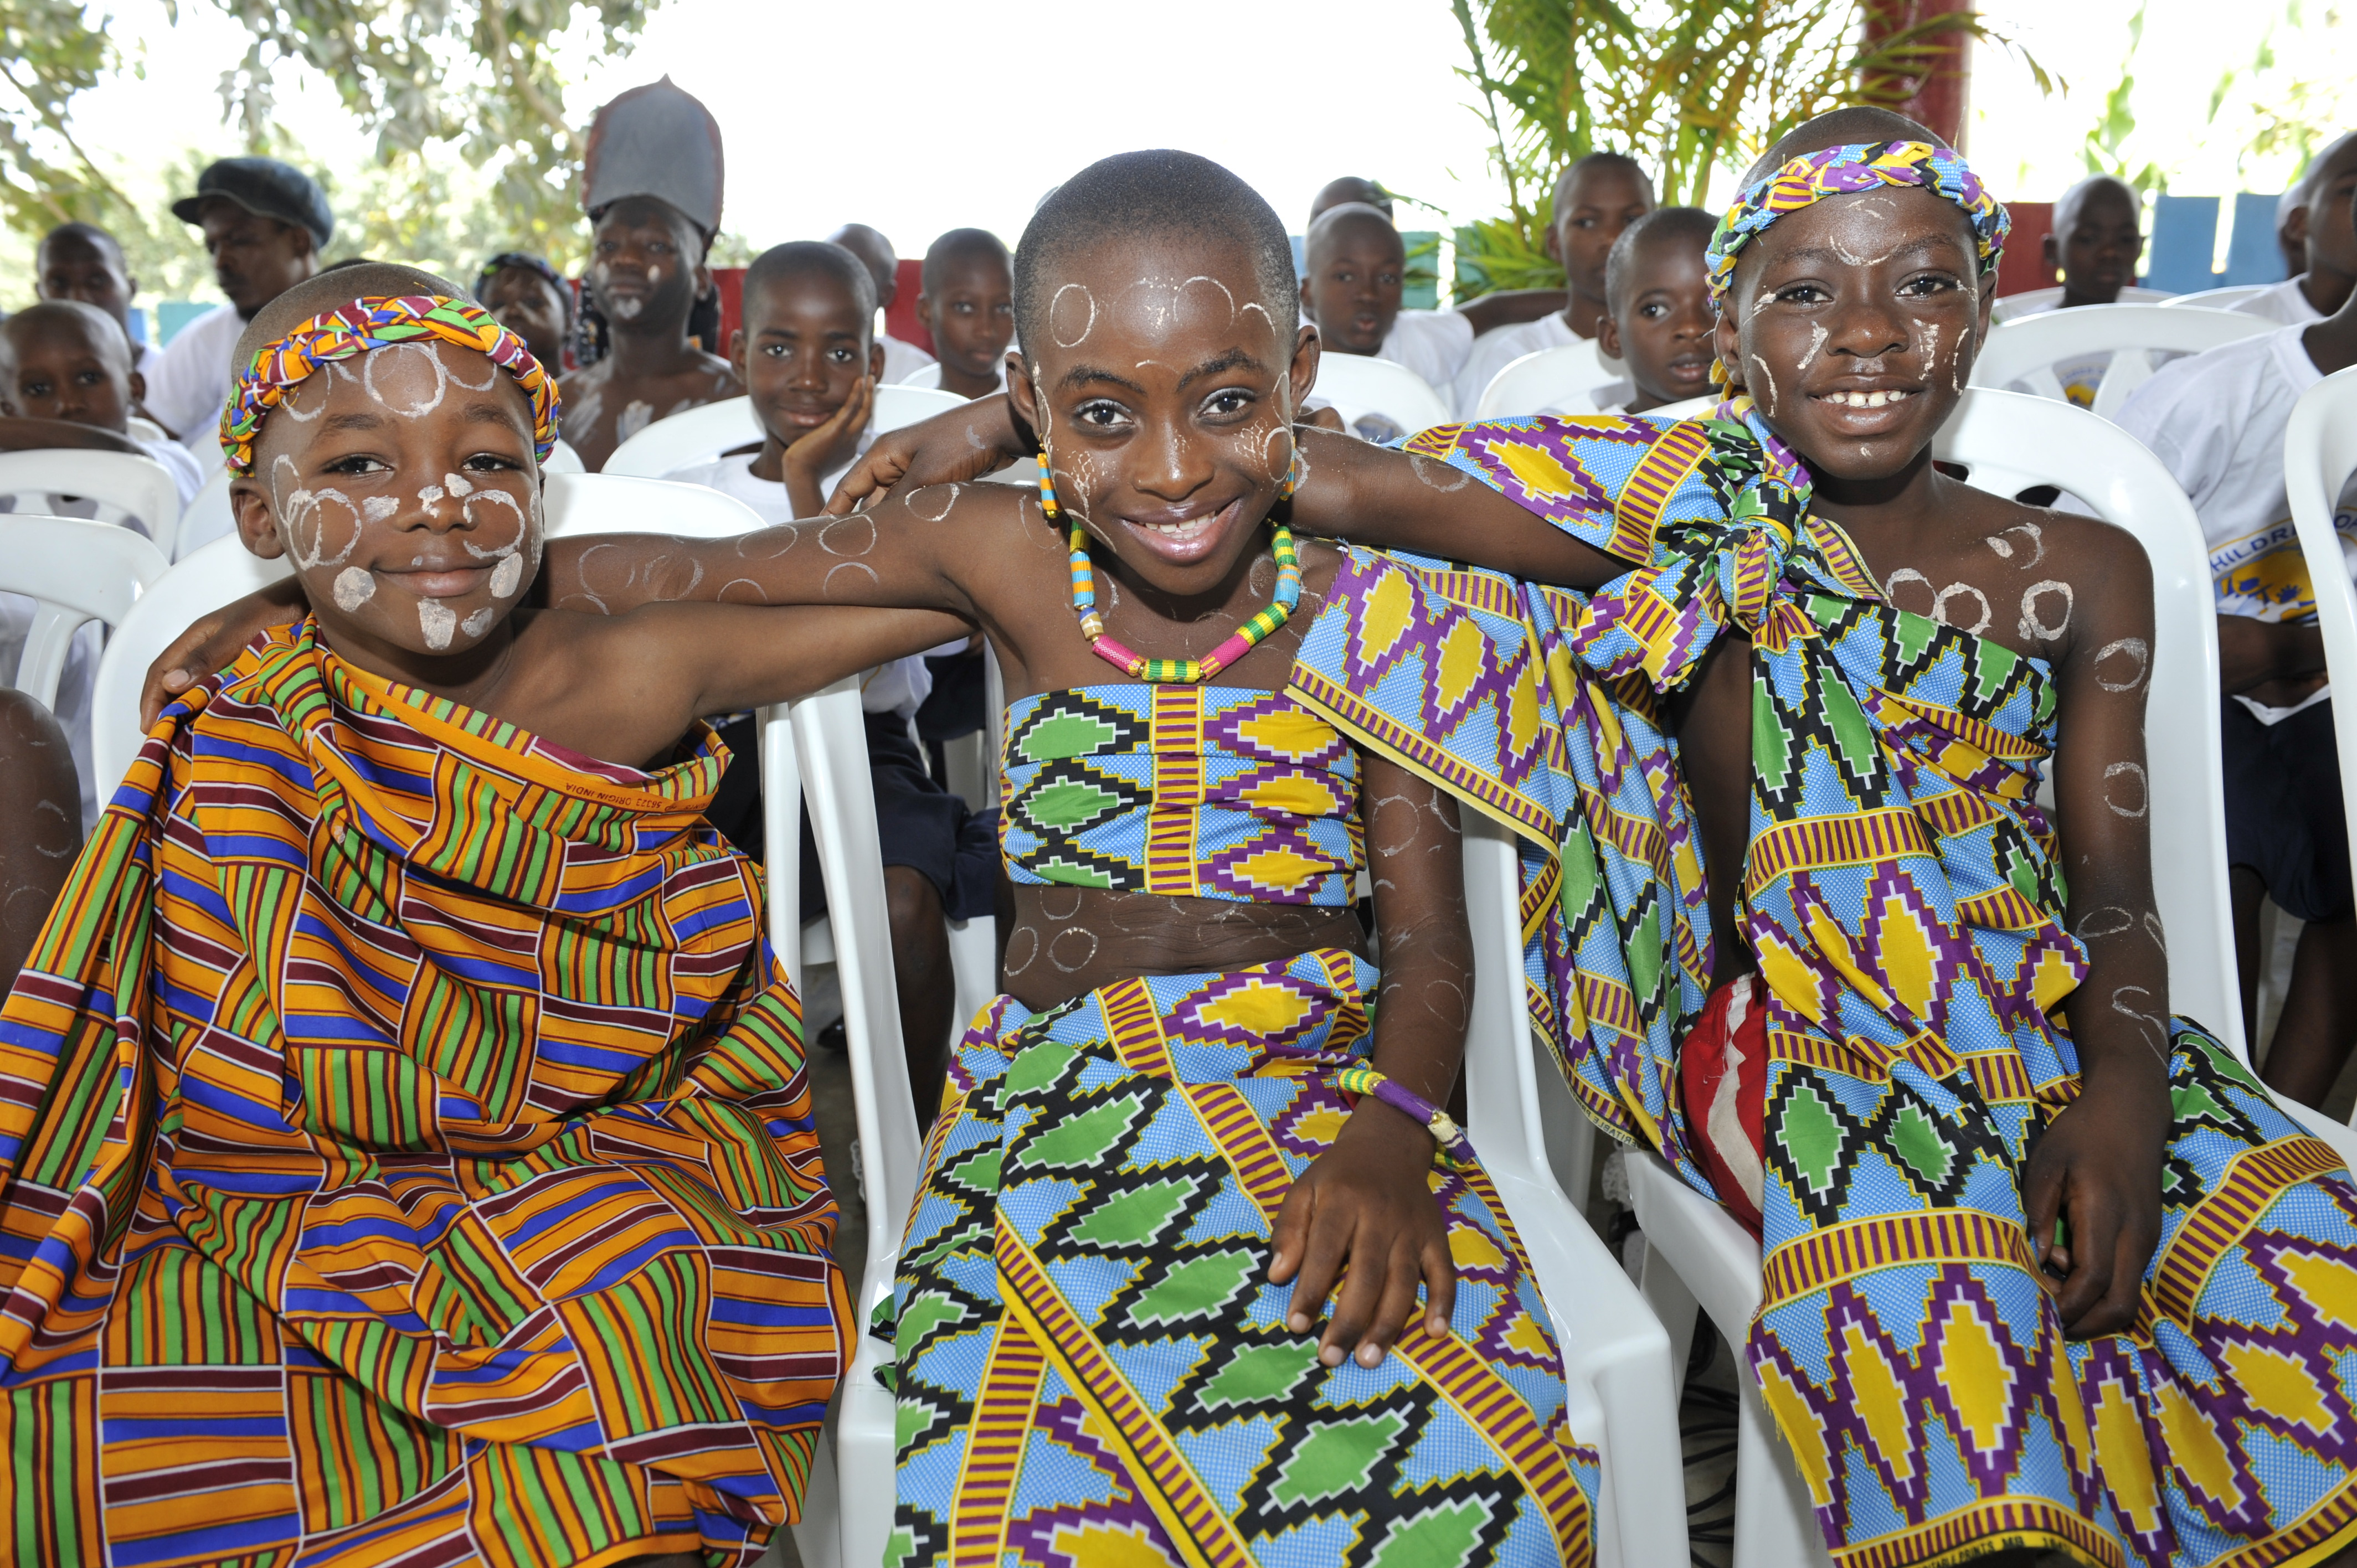 les-enfants-de-la-case-en-tenue-traditionnelle-baoule_0